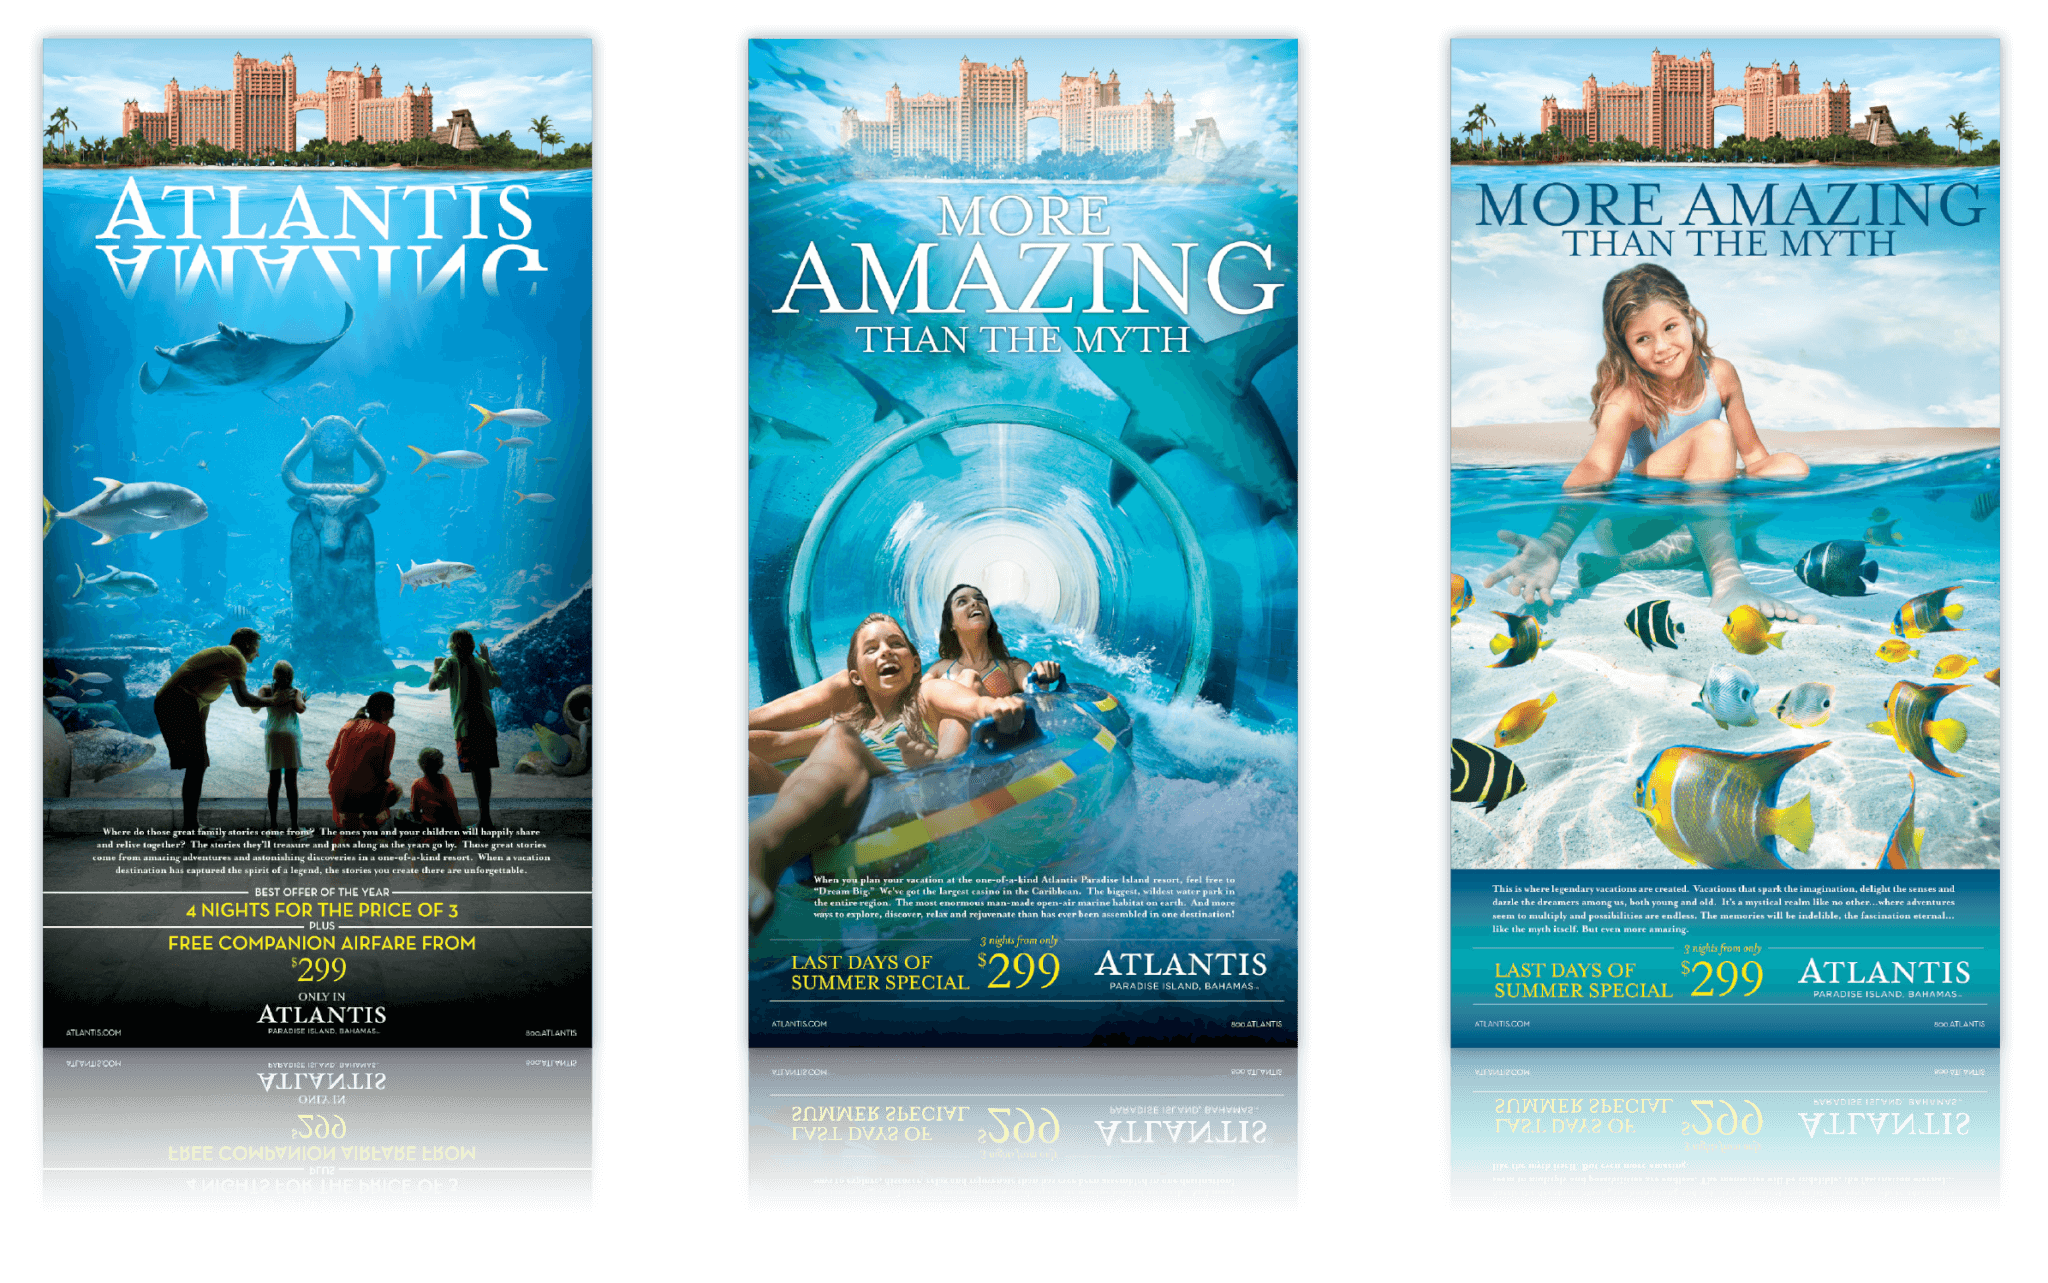 Atlantis Ads